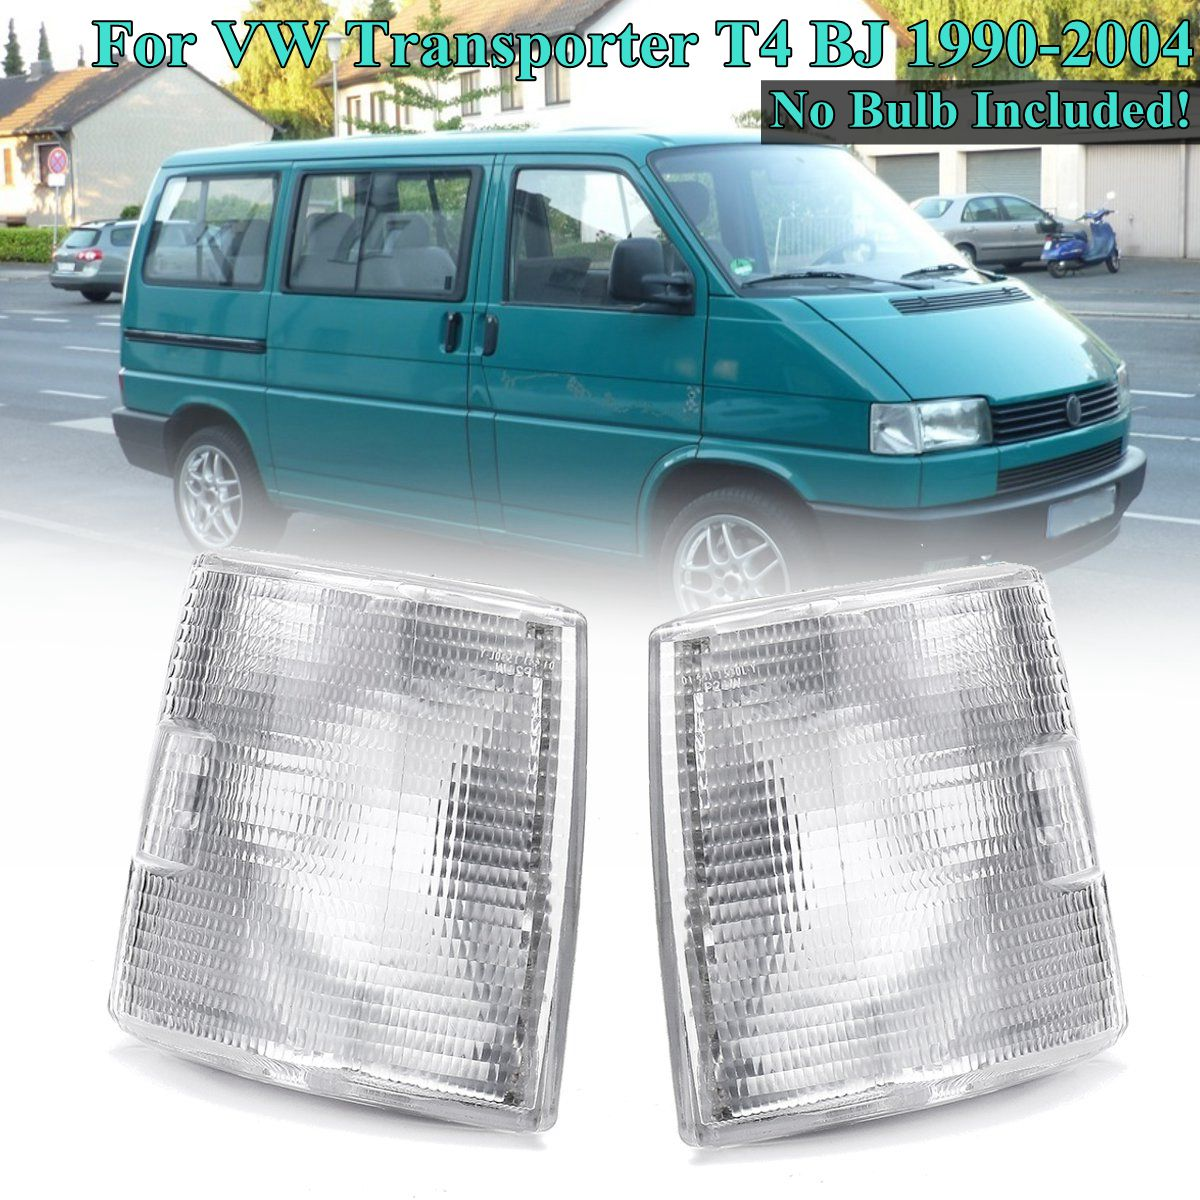 1 Pair Front Corner Lights Indicator Signal Lamps for VW Transporter T4 1990 1991 1992 1993 1994 1995 1996 1997 1998 1999~2004